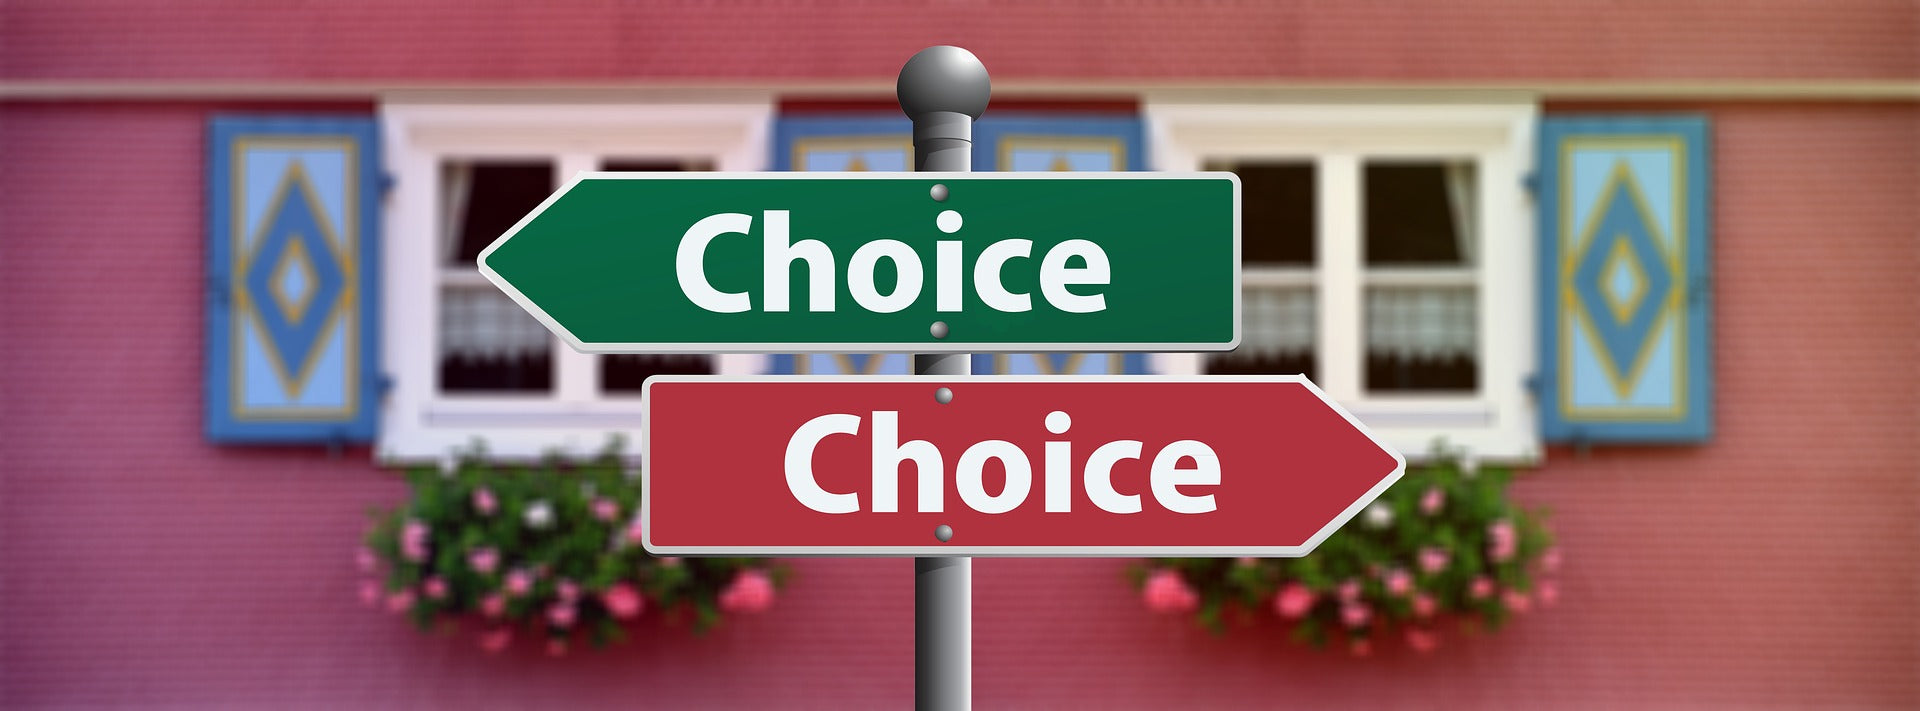 You Always Have Choice | The Clearing Statement